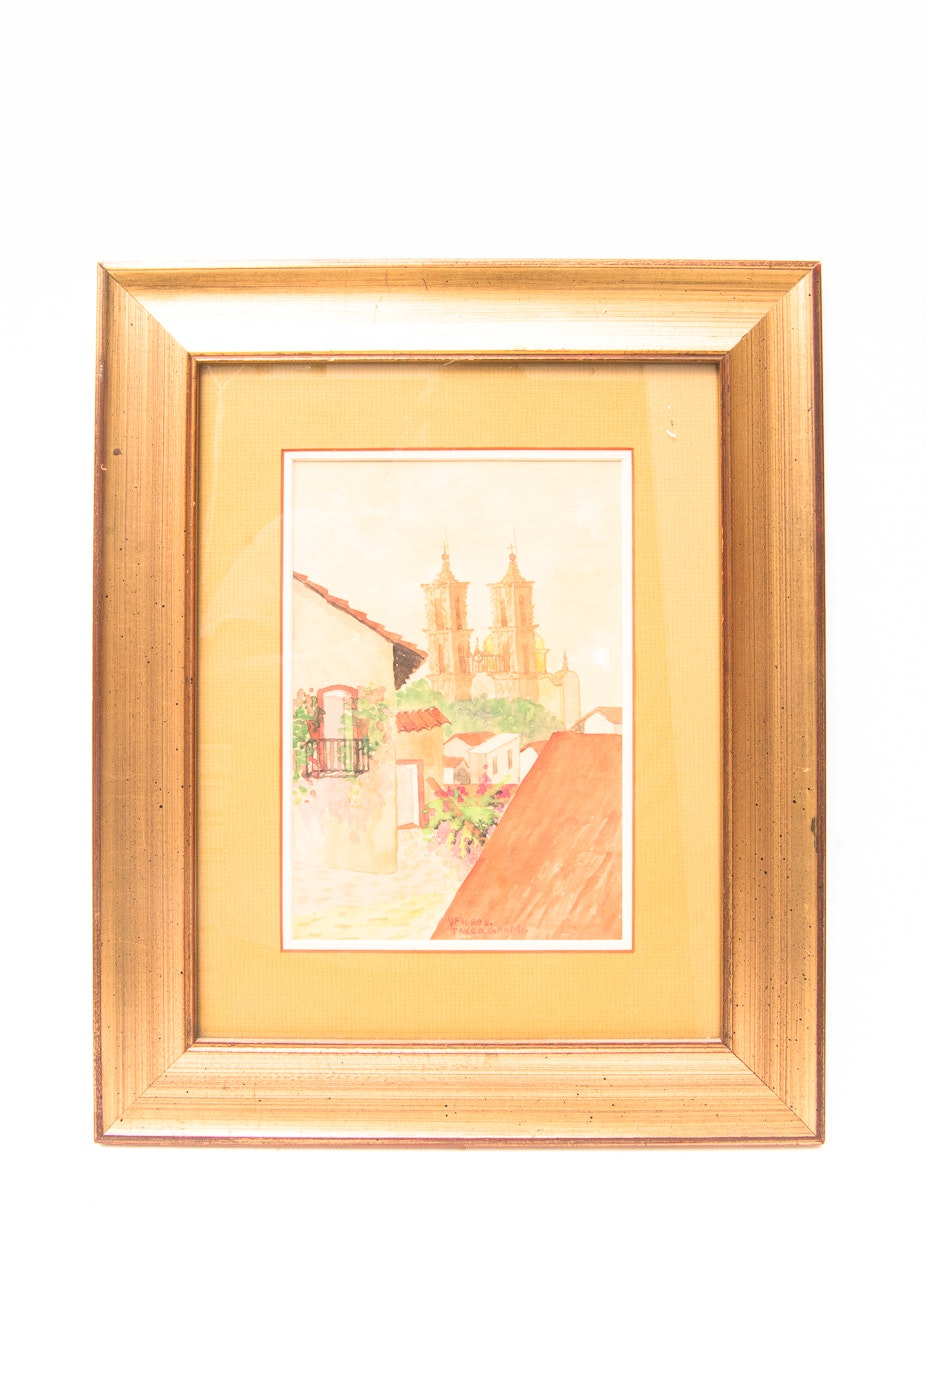 Original Signed Watercolor by V. Flores